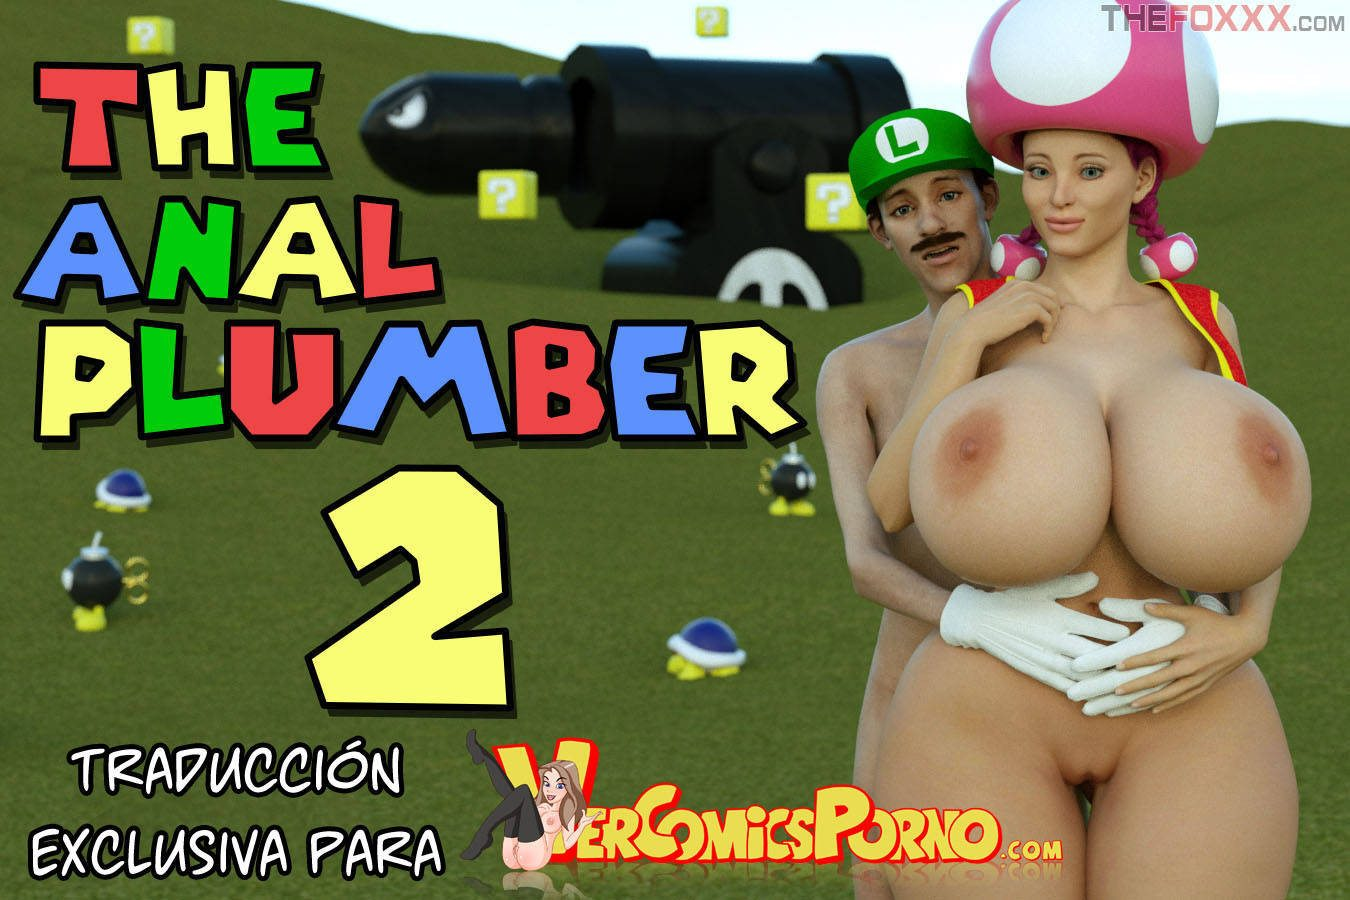 the-anal-plumber-2-traduccion-exclusiva 1